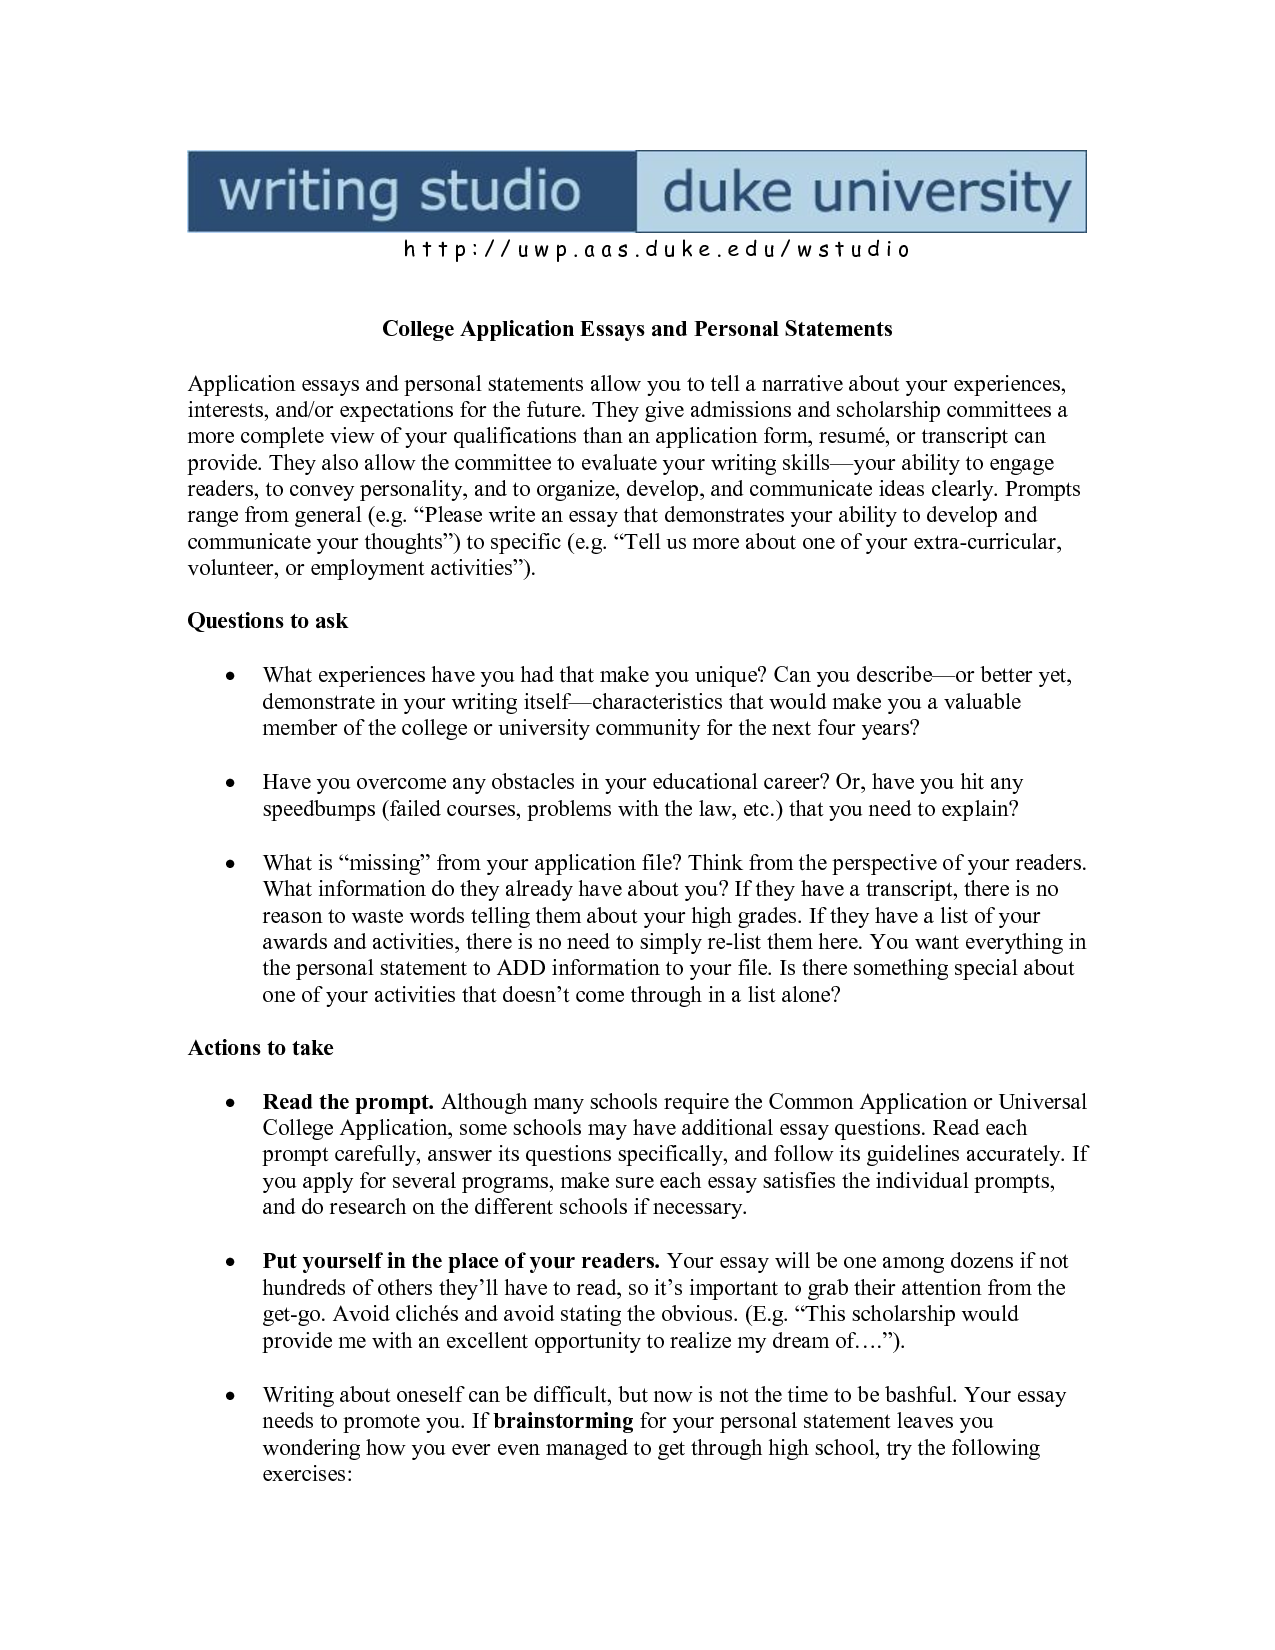 personal essay example for college application